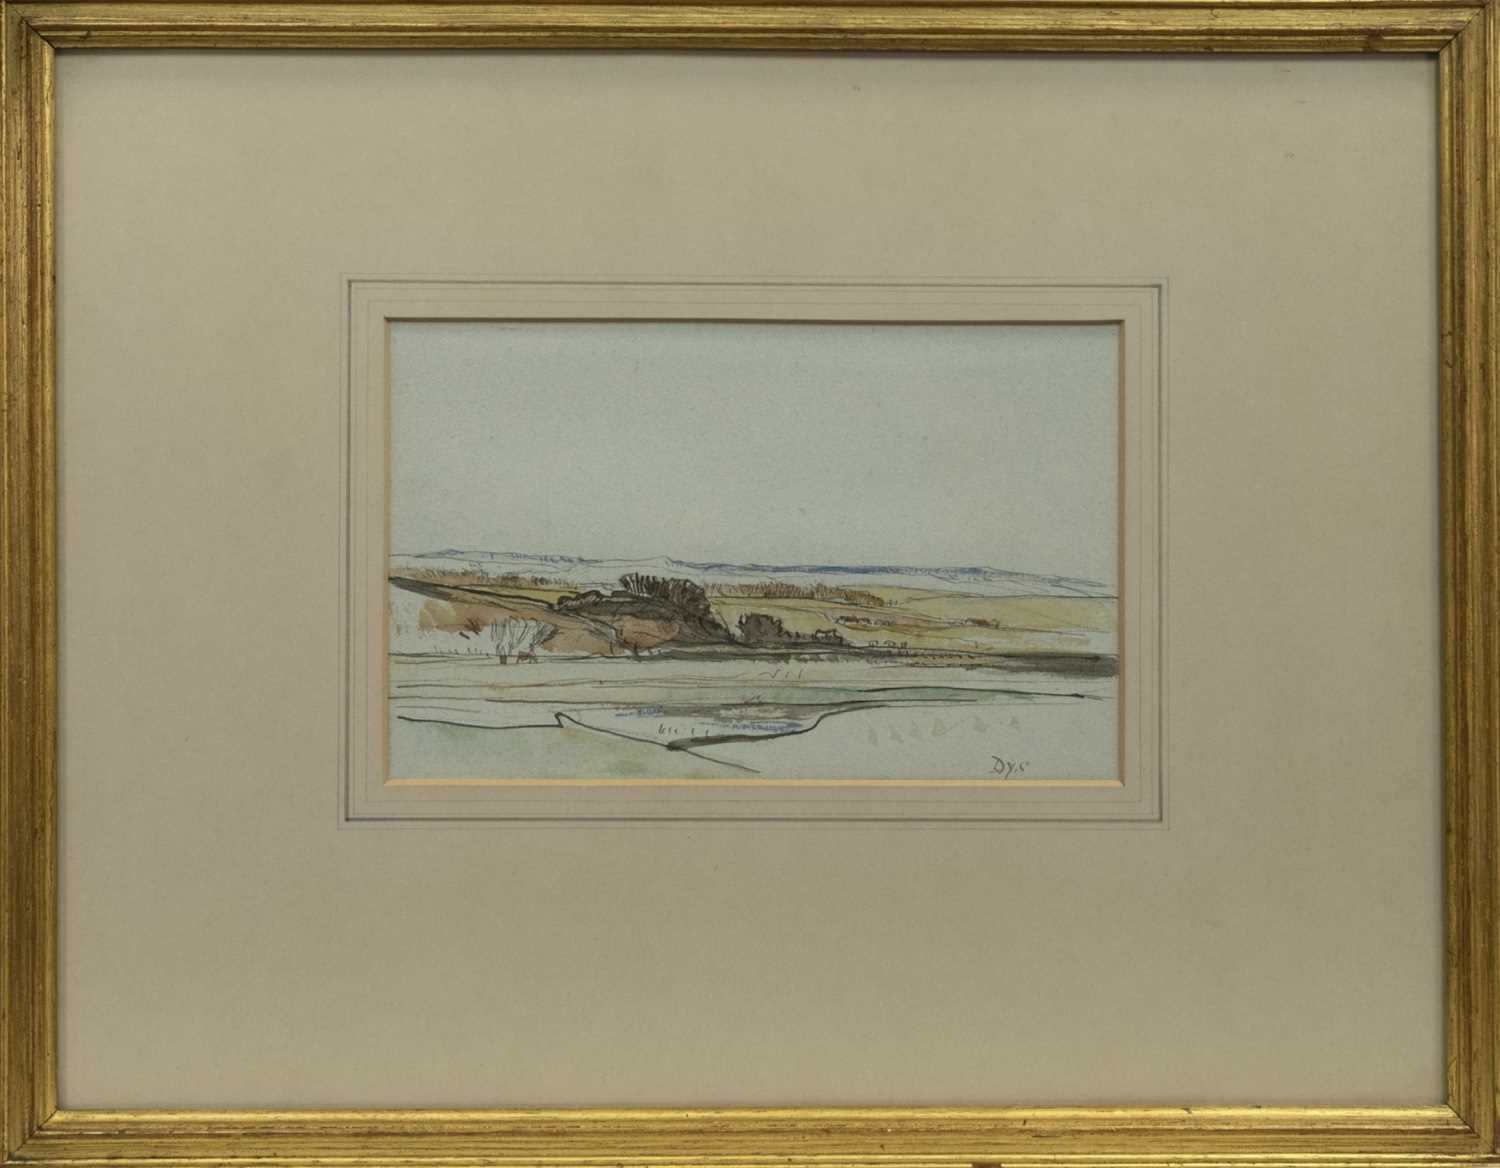 Lot 64 - LOWLAND HILLS, A WATERCOLOUR BY D Y CAMERON